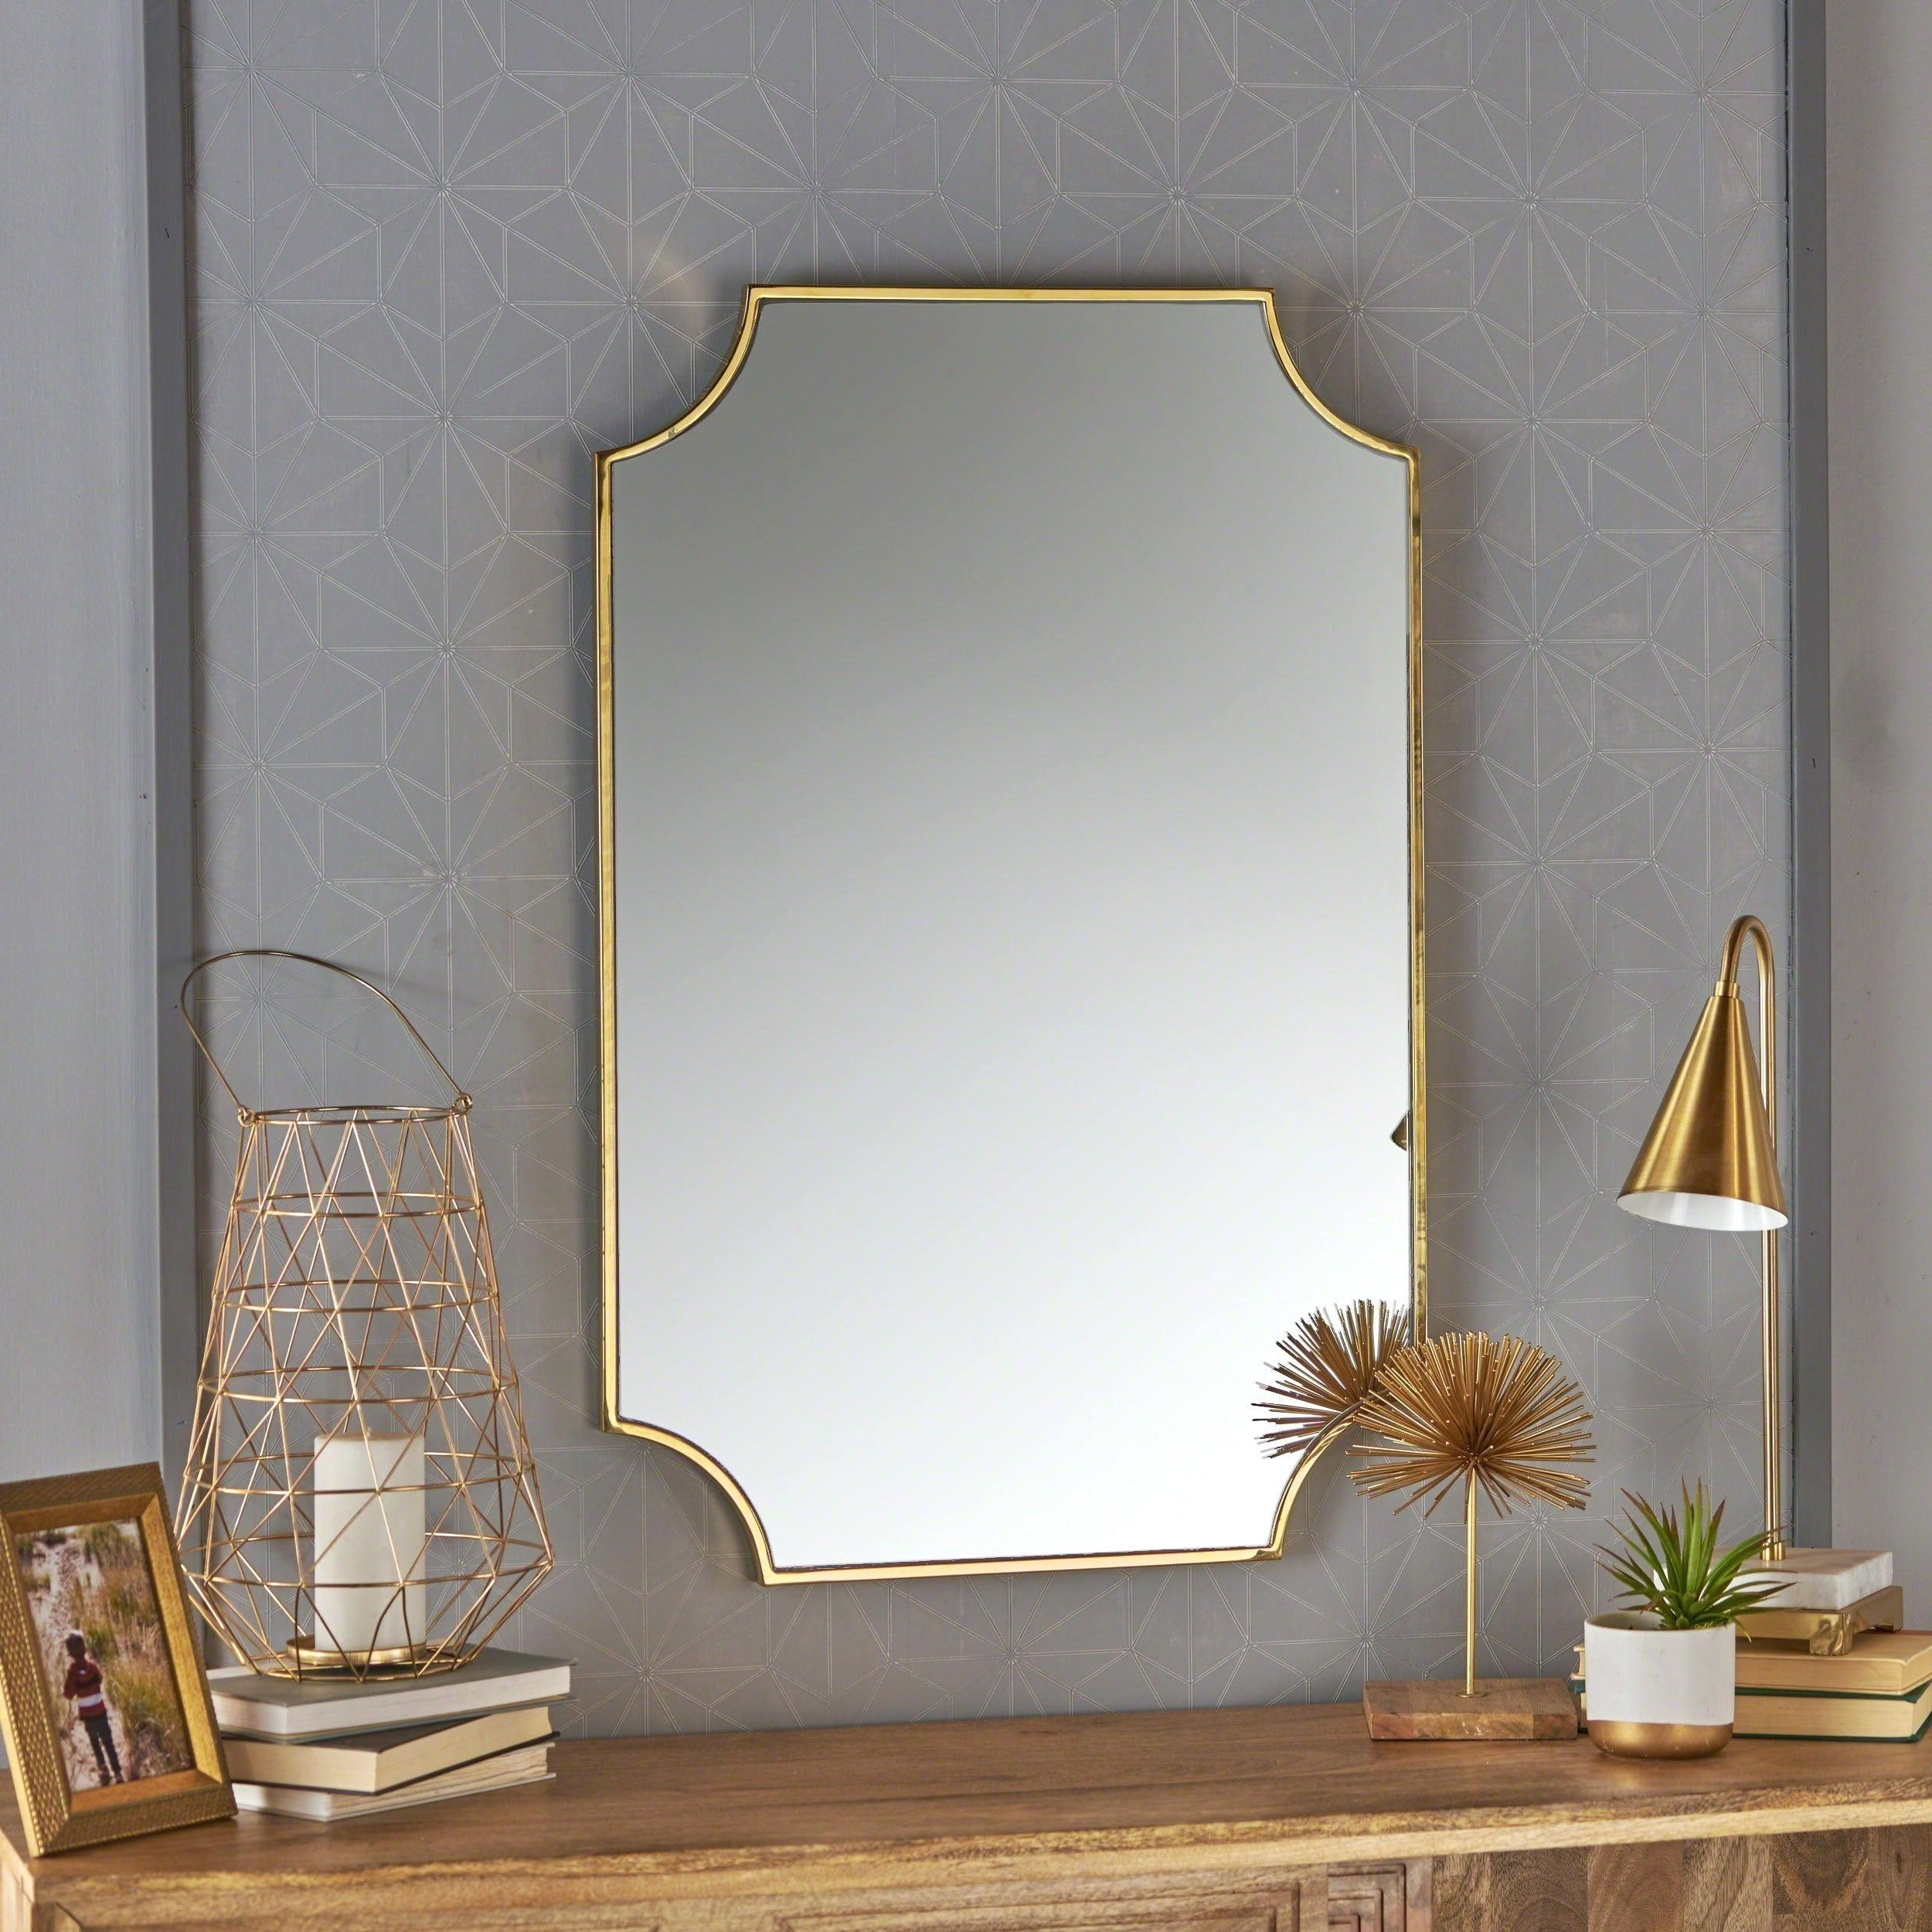 Trendy Large Decorative Wall Mirror Sets Paragon Reflections Square In Small Decorative Wall Mirror Sets (View 18 of 20)